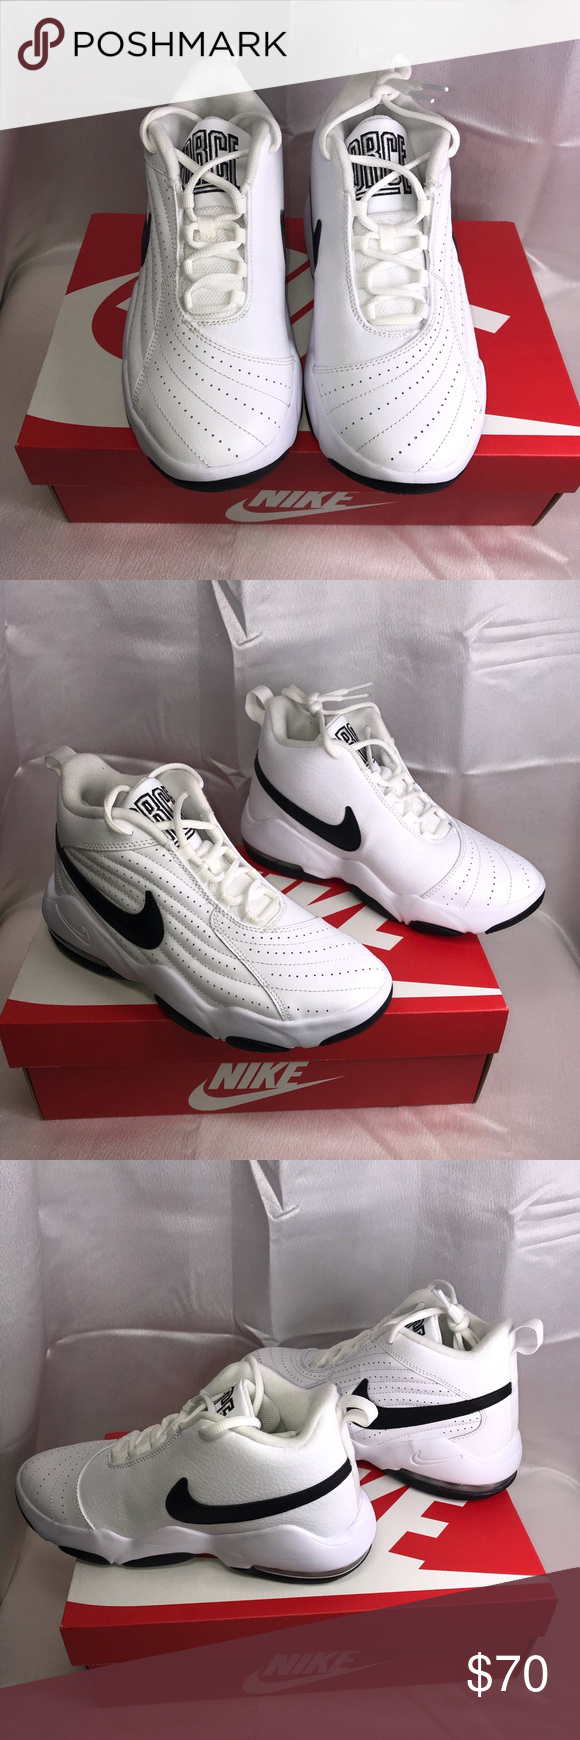 Nike Air Core Force Sneakers Wht/Blk GS